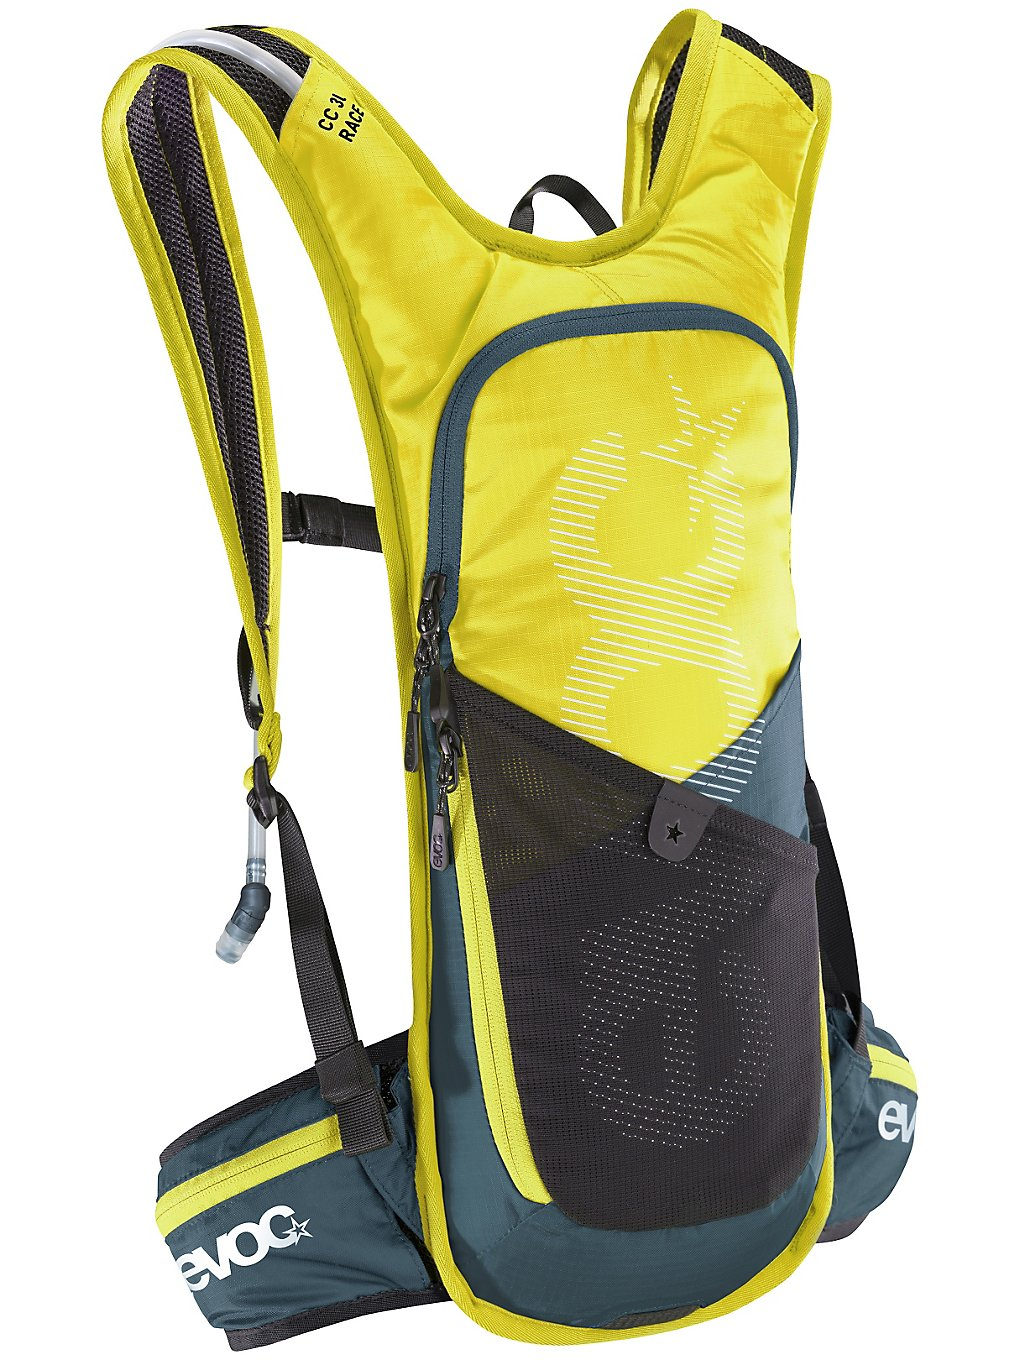 Evoc Cc 3L Race + 2L Bladder Backpack Preisvergleich